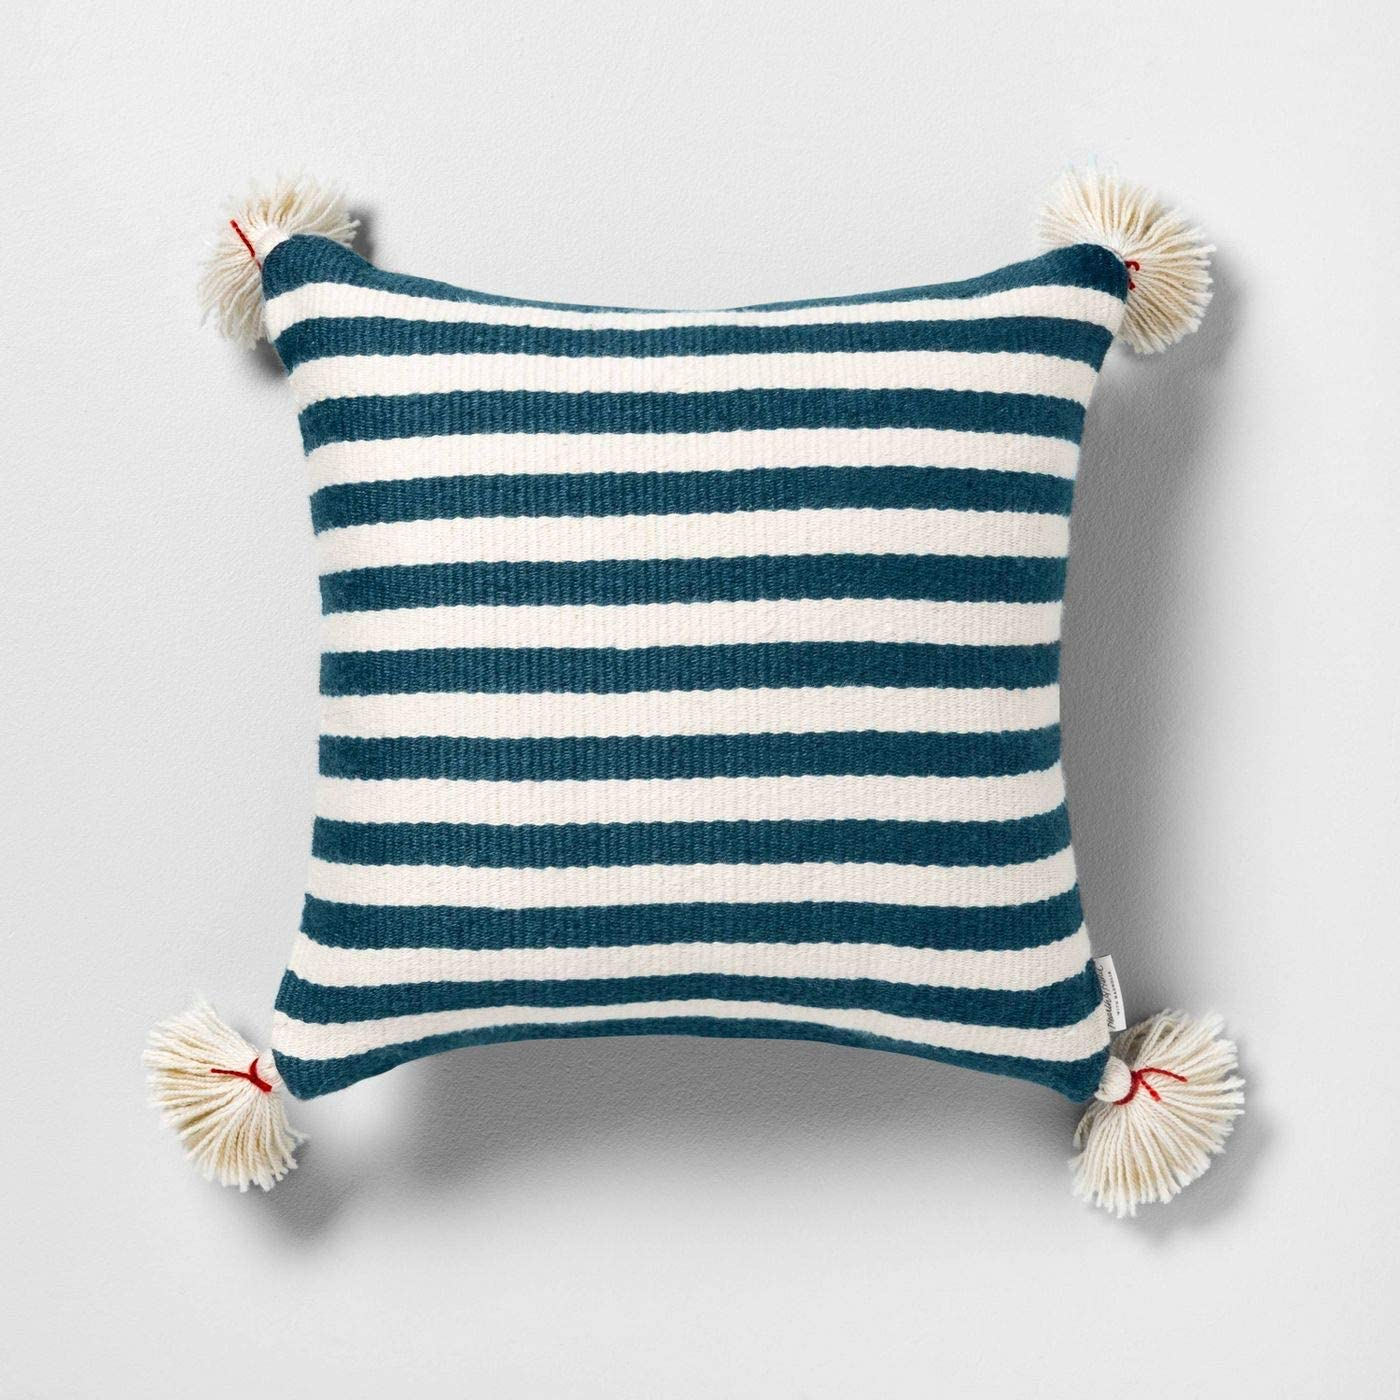 Square, Blue Hearth /& Hand with Magnolia Outdoor Toss Pillow